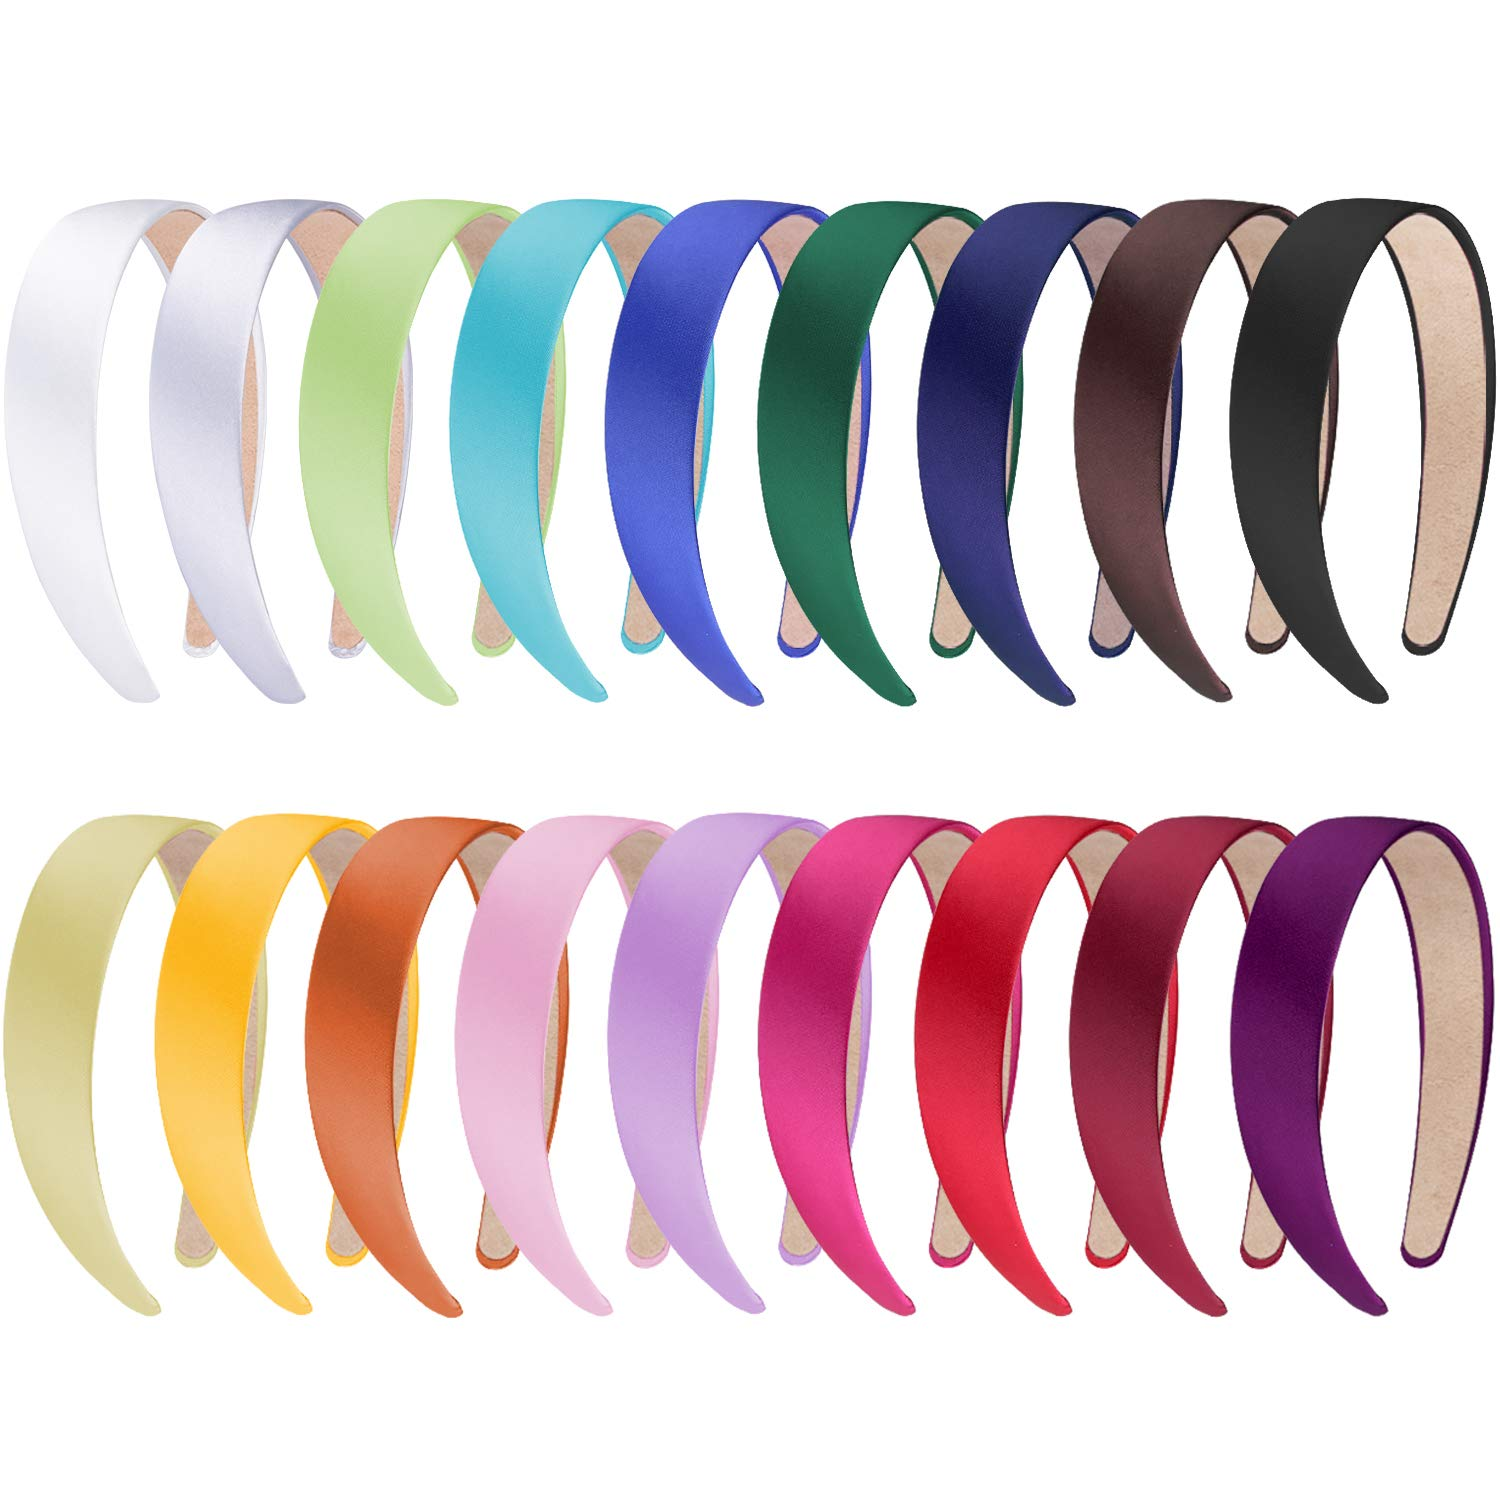 SIQUK 18 Pieces Satin Headbands 1 Inch Wide Non-slip Headband Colorful DIY Headbands for Women and girls, 18 Colors by SIQUK